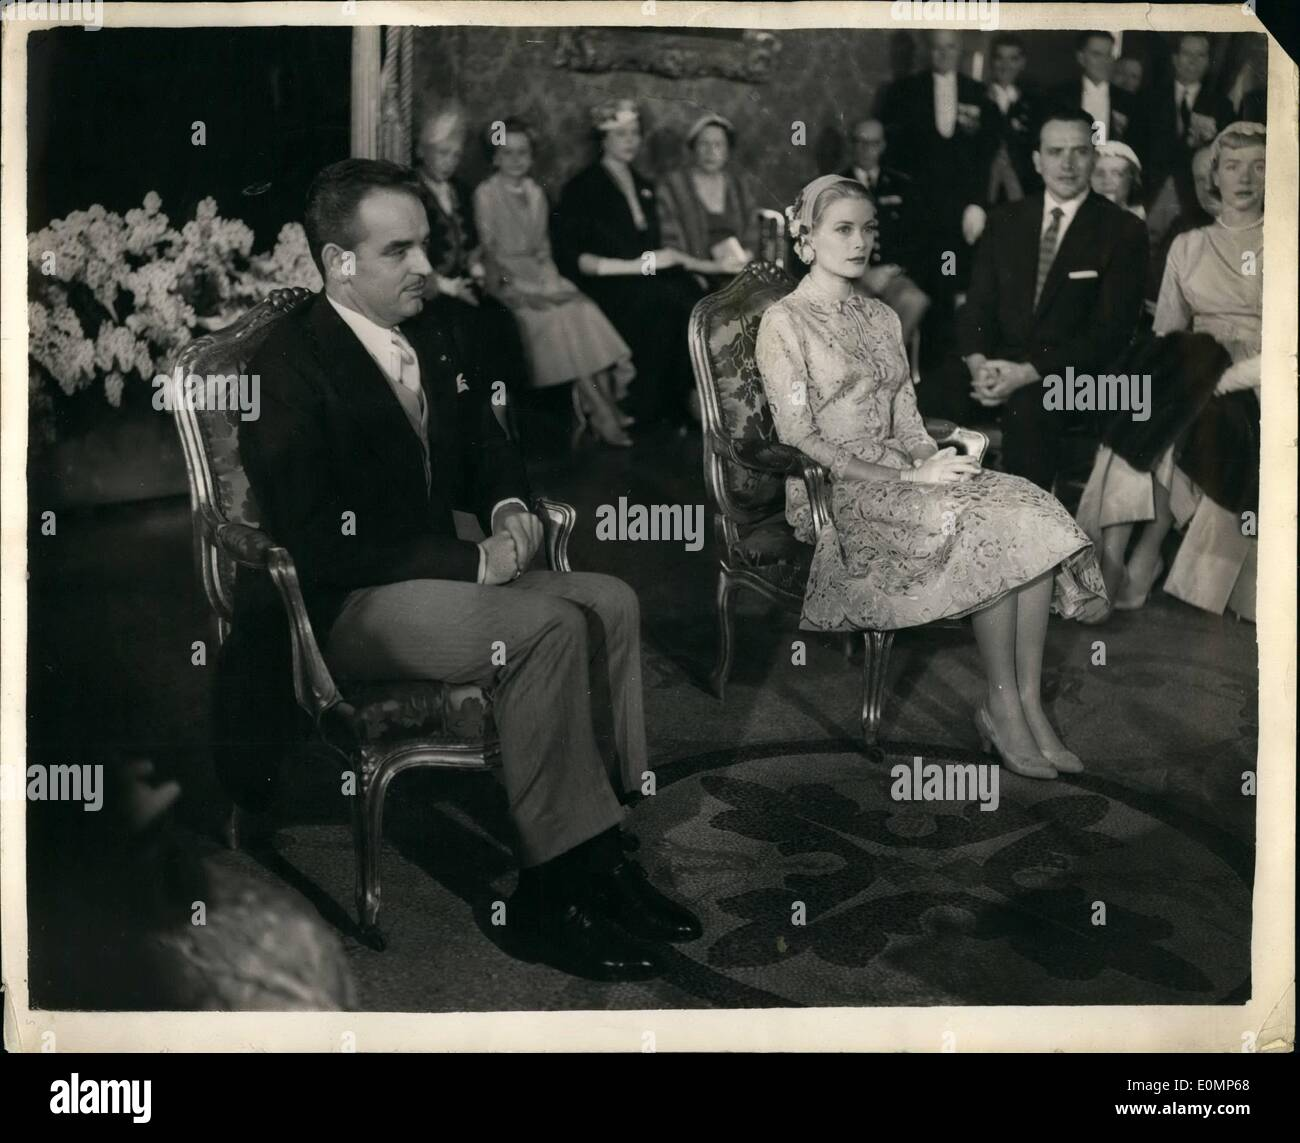 Apr. 04, 1956 - Grace Kelly marries prince Rainier Civil Ceramony at the Royal Palace. Photo shows The scene inside the Throne Room of the Royal Palace at Monte Carlo showing Grace Kelly and Prince Rainier before the signing of the documents during their Civil wedding ceremony today. - Stock Image